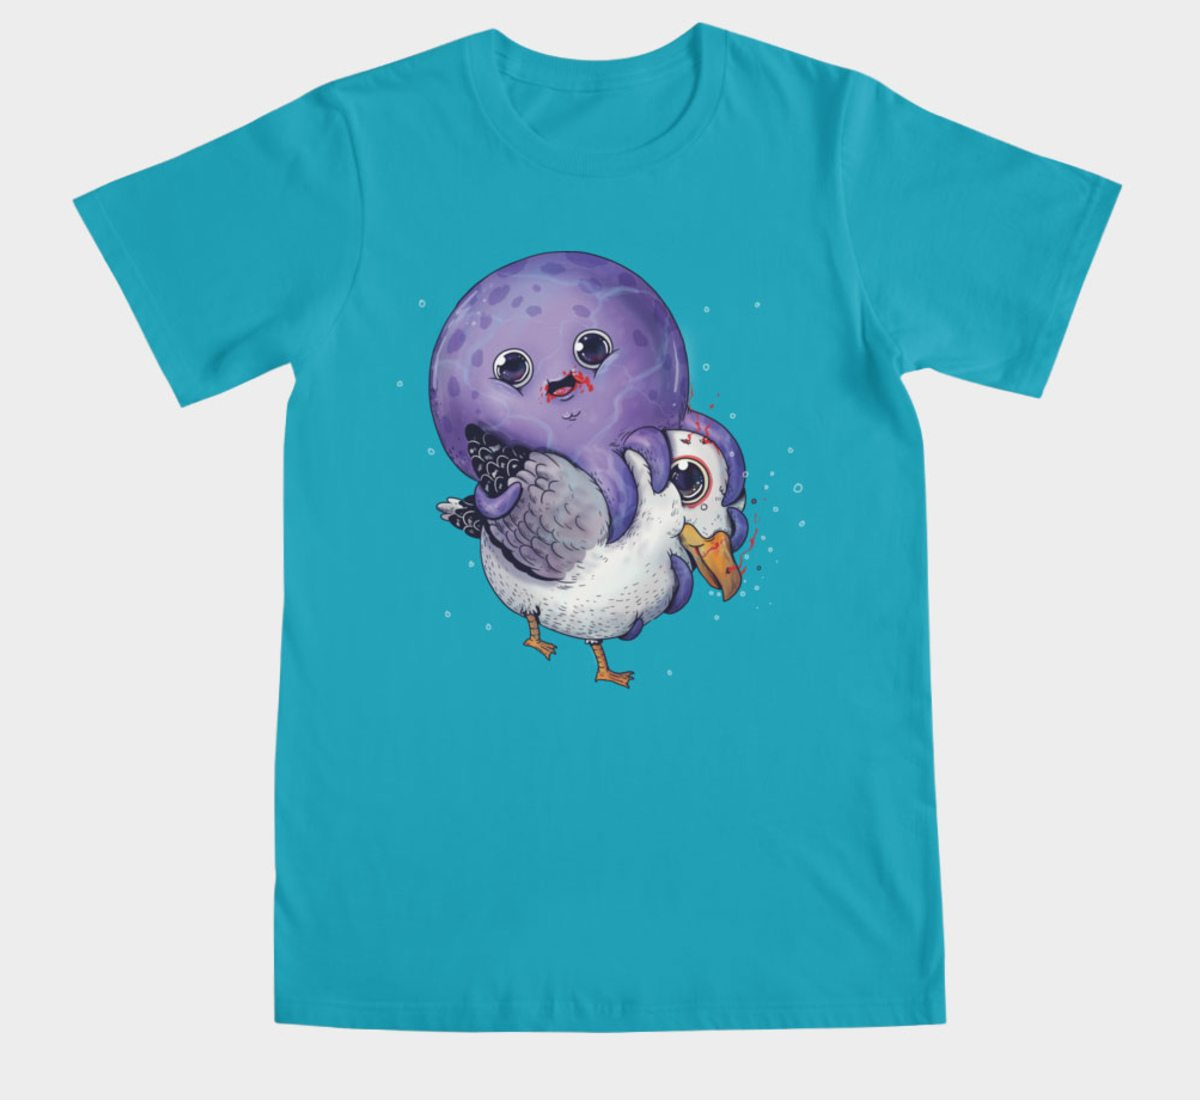 shirt_guys_01_squidd_391